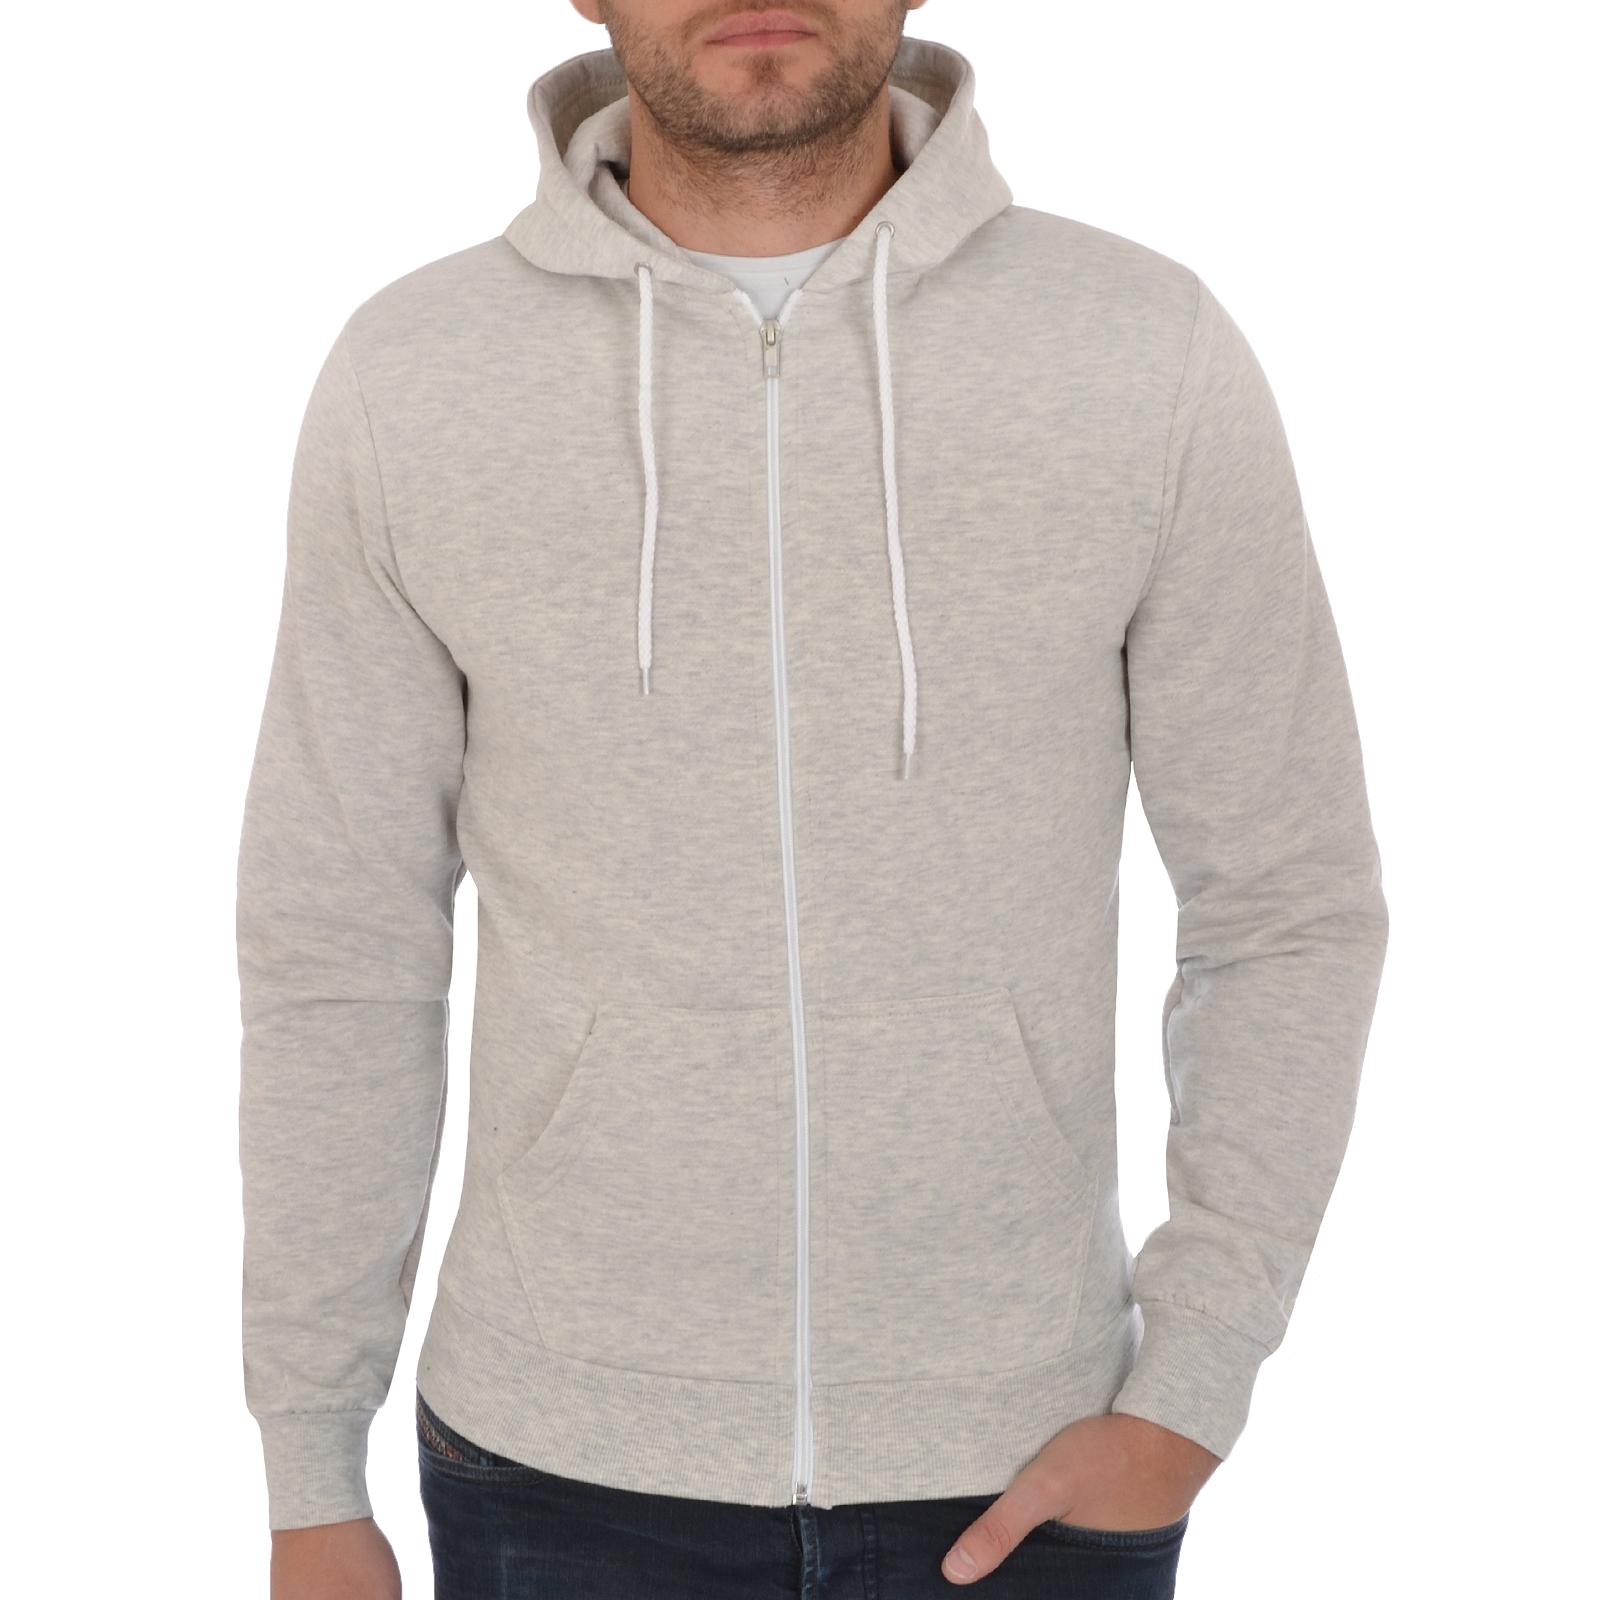 Shop American Eagle Outfitters for men's and women's jeans, T's, shoes and more. Slim Fit Hoodie. Tailgate Women's Michigan Popover Hoodie Regular Price $ Sale Price $ Free Shipping + Free Returns. front zip hoodie. long sleeves hoodie. oversized hoodie. reflective hoodie. blue hoodie.